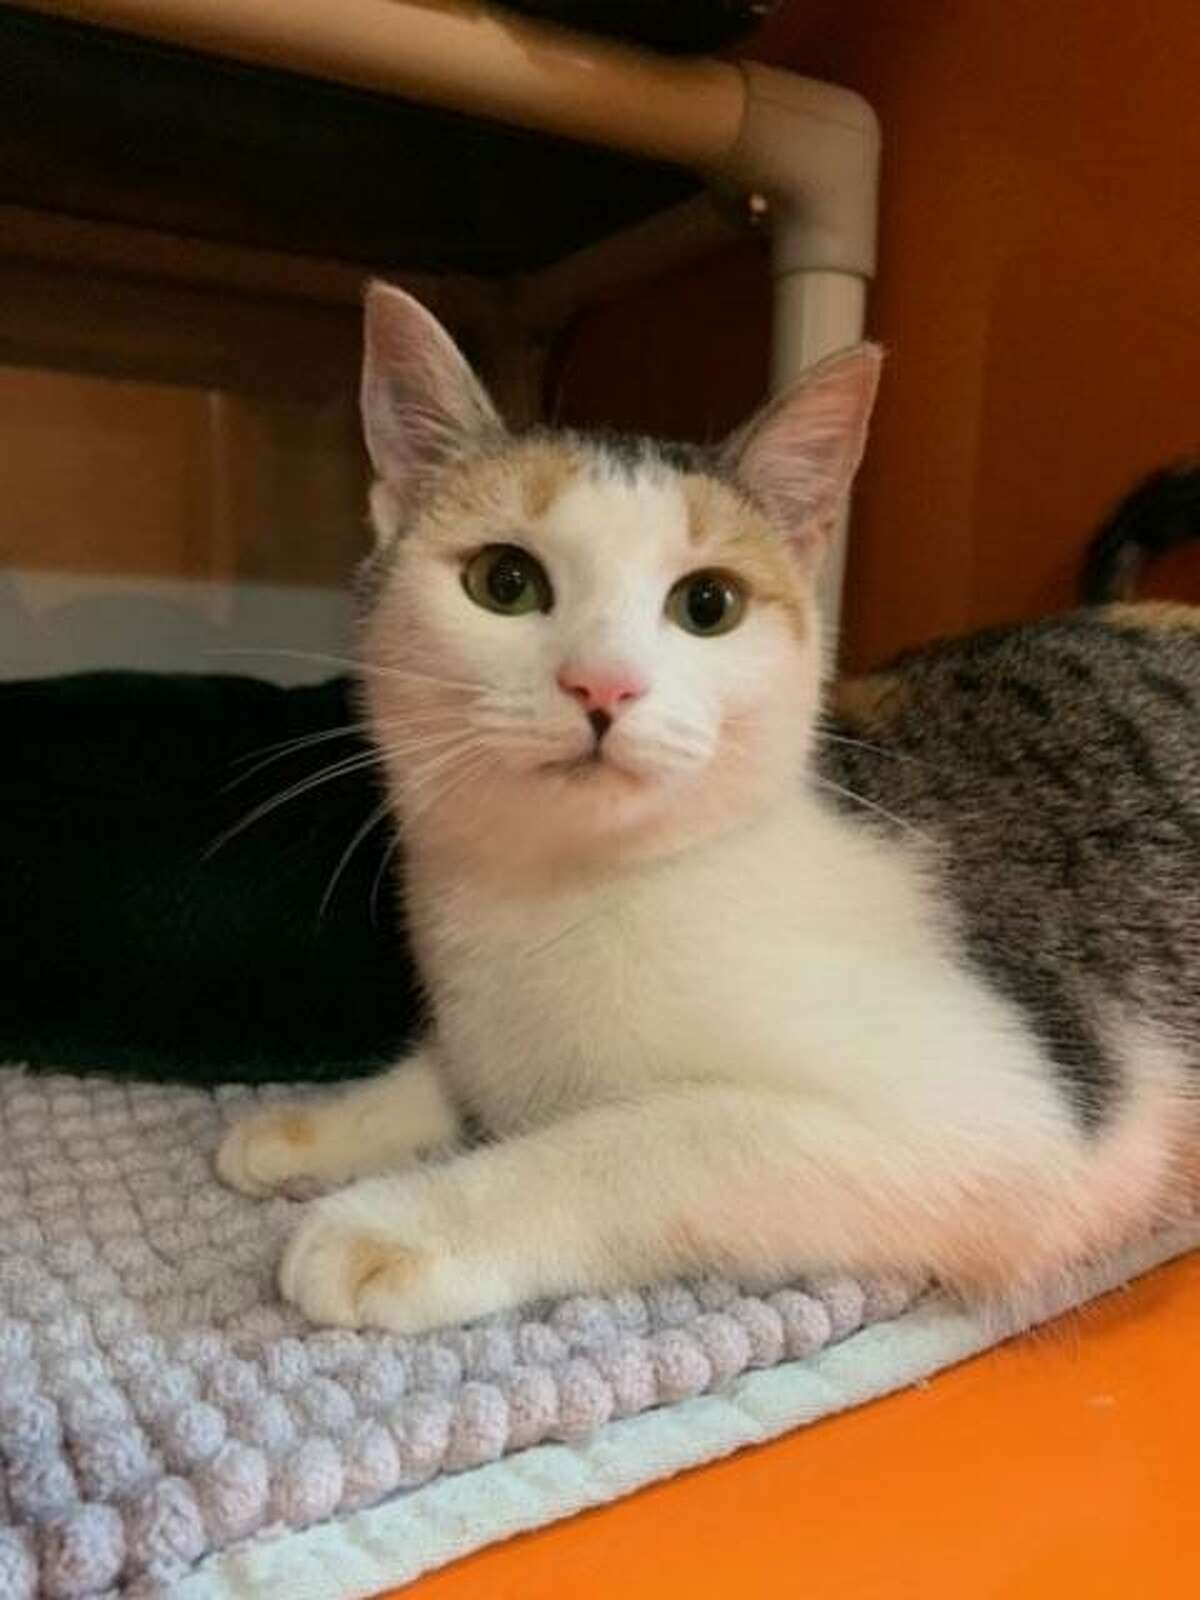 Milky Way will make a great lap cat. She is available to meet by calling the ROAR Donofrio Family Animal Shelter, 45 South St. in Ridgefield, at (203) 438-0158 for an appointment.